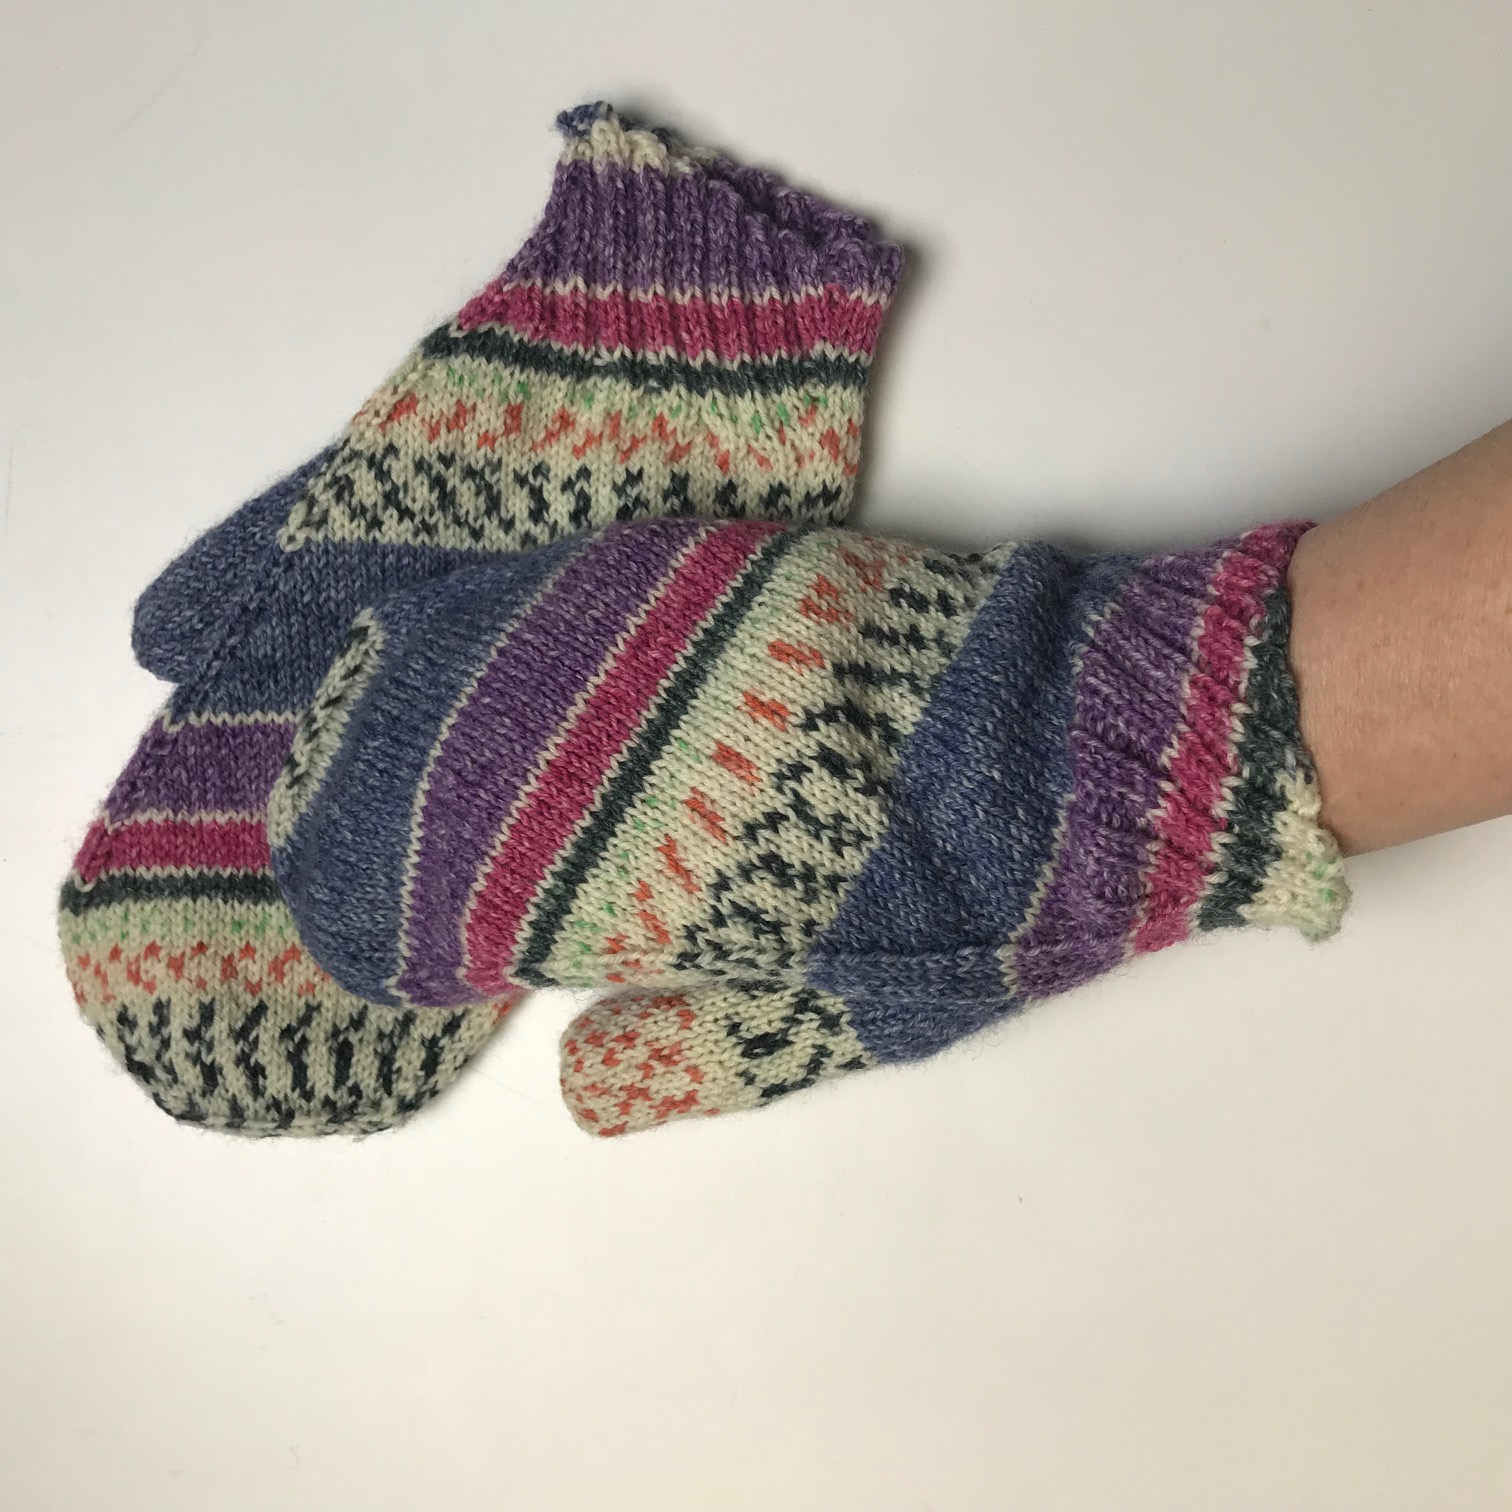 Zephyr Mittens - SOLD OUT